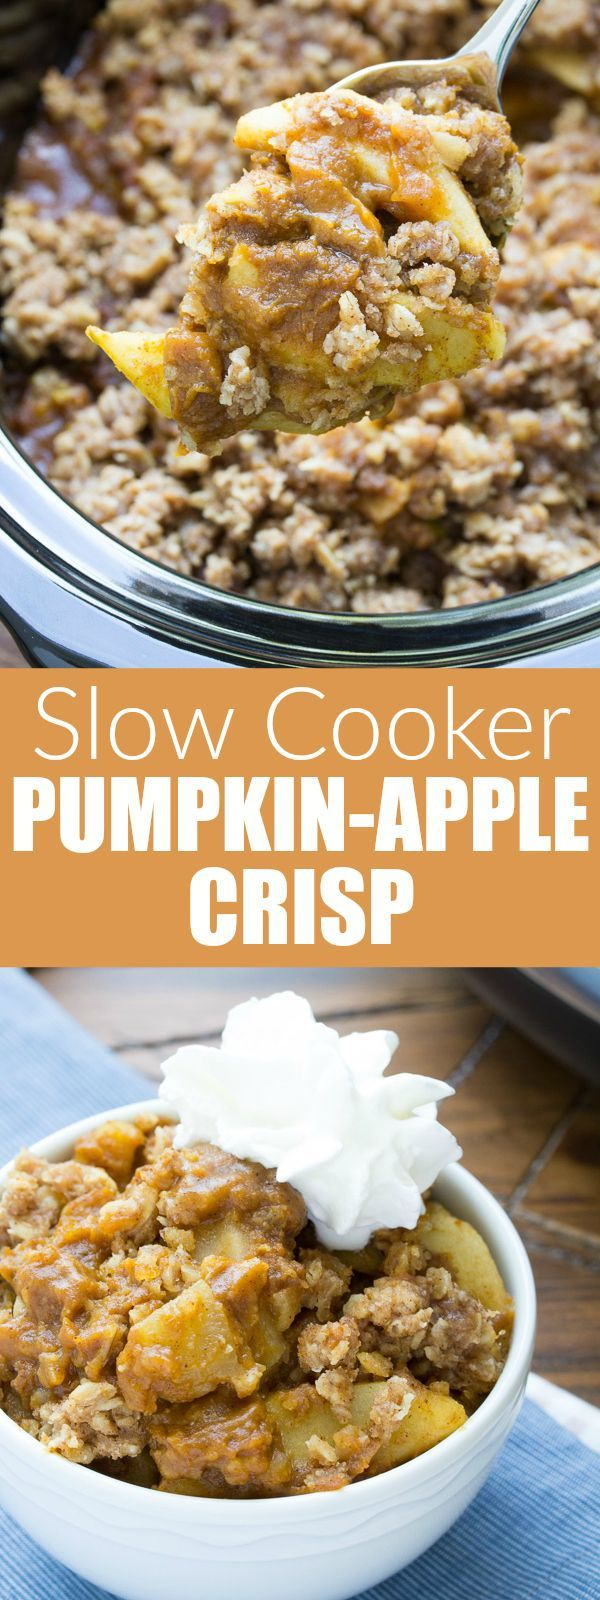 This Slow Cooker Pumpkin Apple Crisp is an easy dessert that's made completely in your crock pot! With juicy apples and a healthier pumpkin pie filling, it's like apple crisp and pumpkin pie in one. A perfect Thanksgiving dessert! | http://www.kristineskitchenblog.com